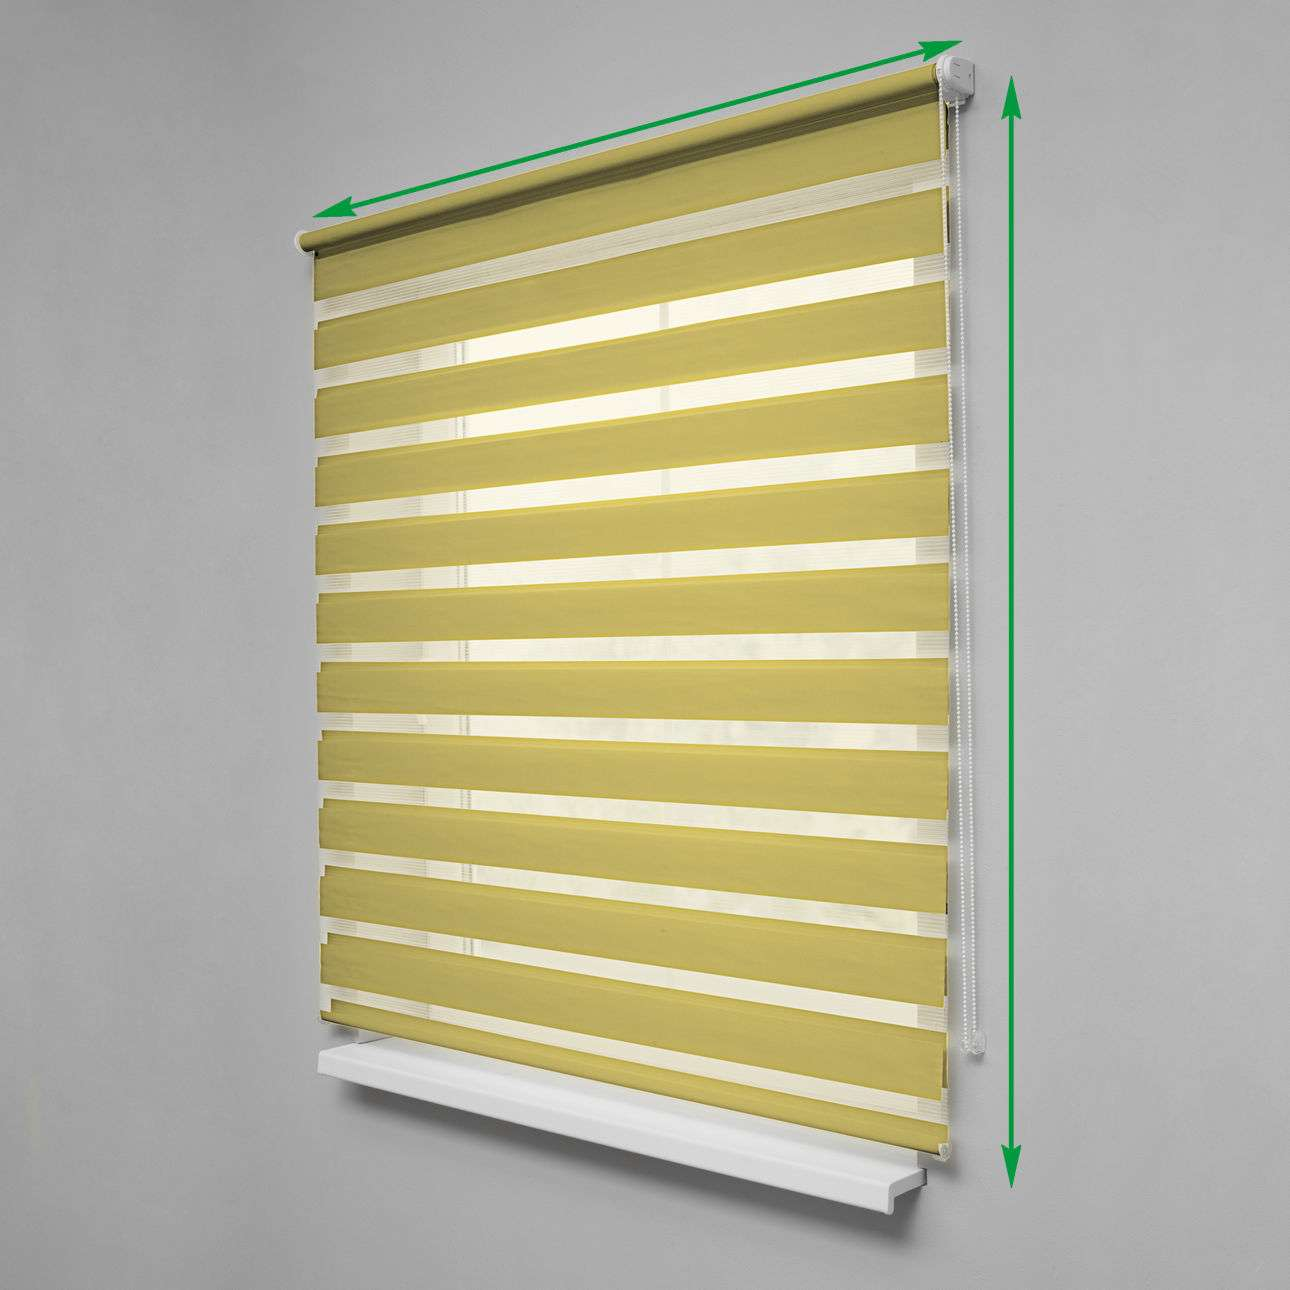 Day & Night Venetian roller blind in collection Roller blinds Day & Night (Venetian blind), fabric: 1206